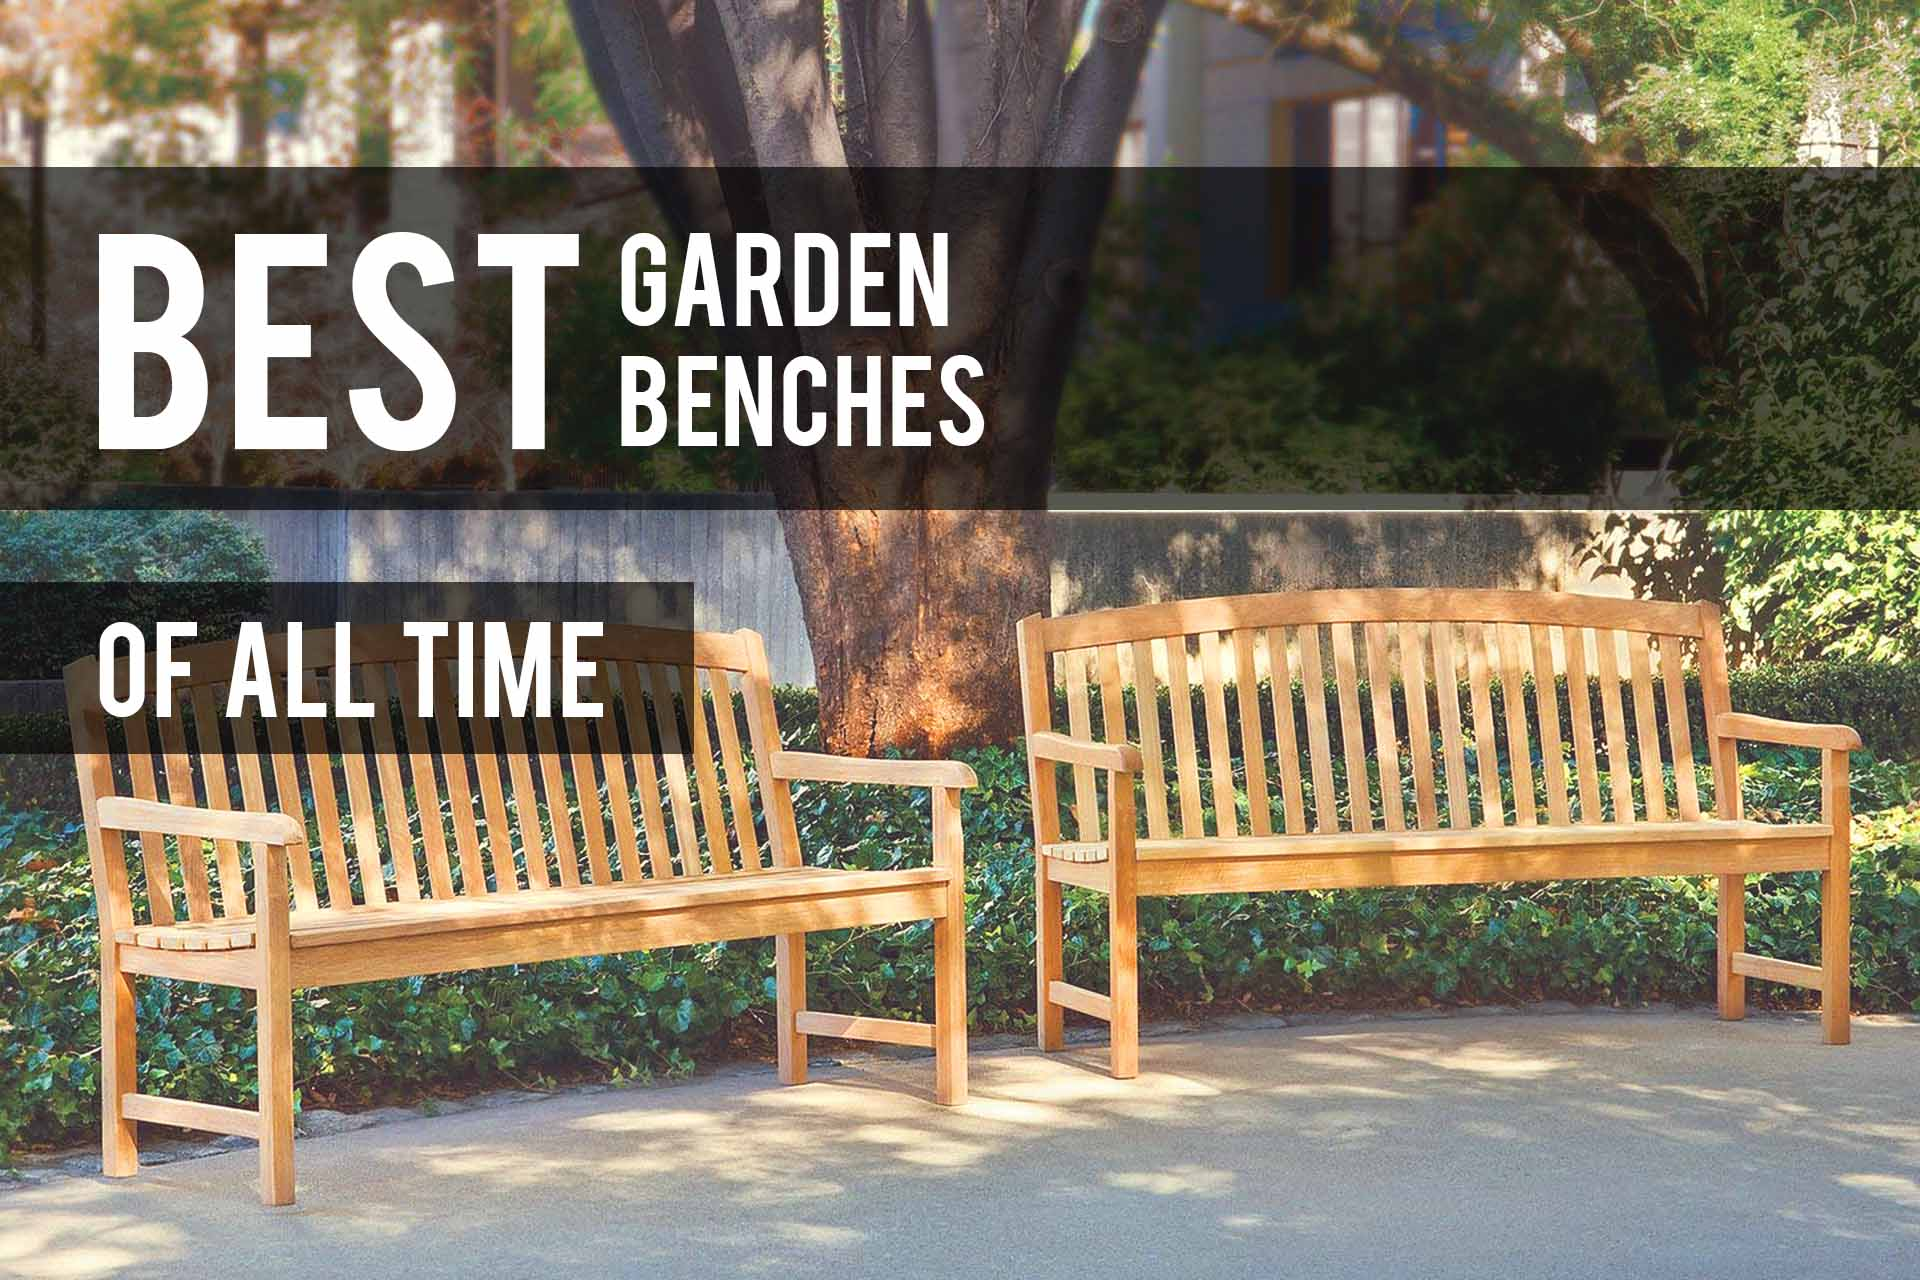 Astounding Best Garden Benches 2019 Reviews Comparison The Patio Pro Short Links Chair Design For Home Short Linksinfo